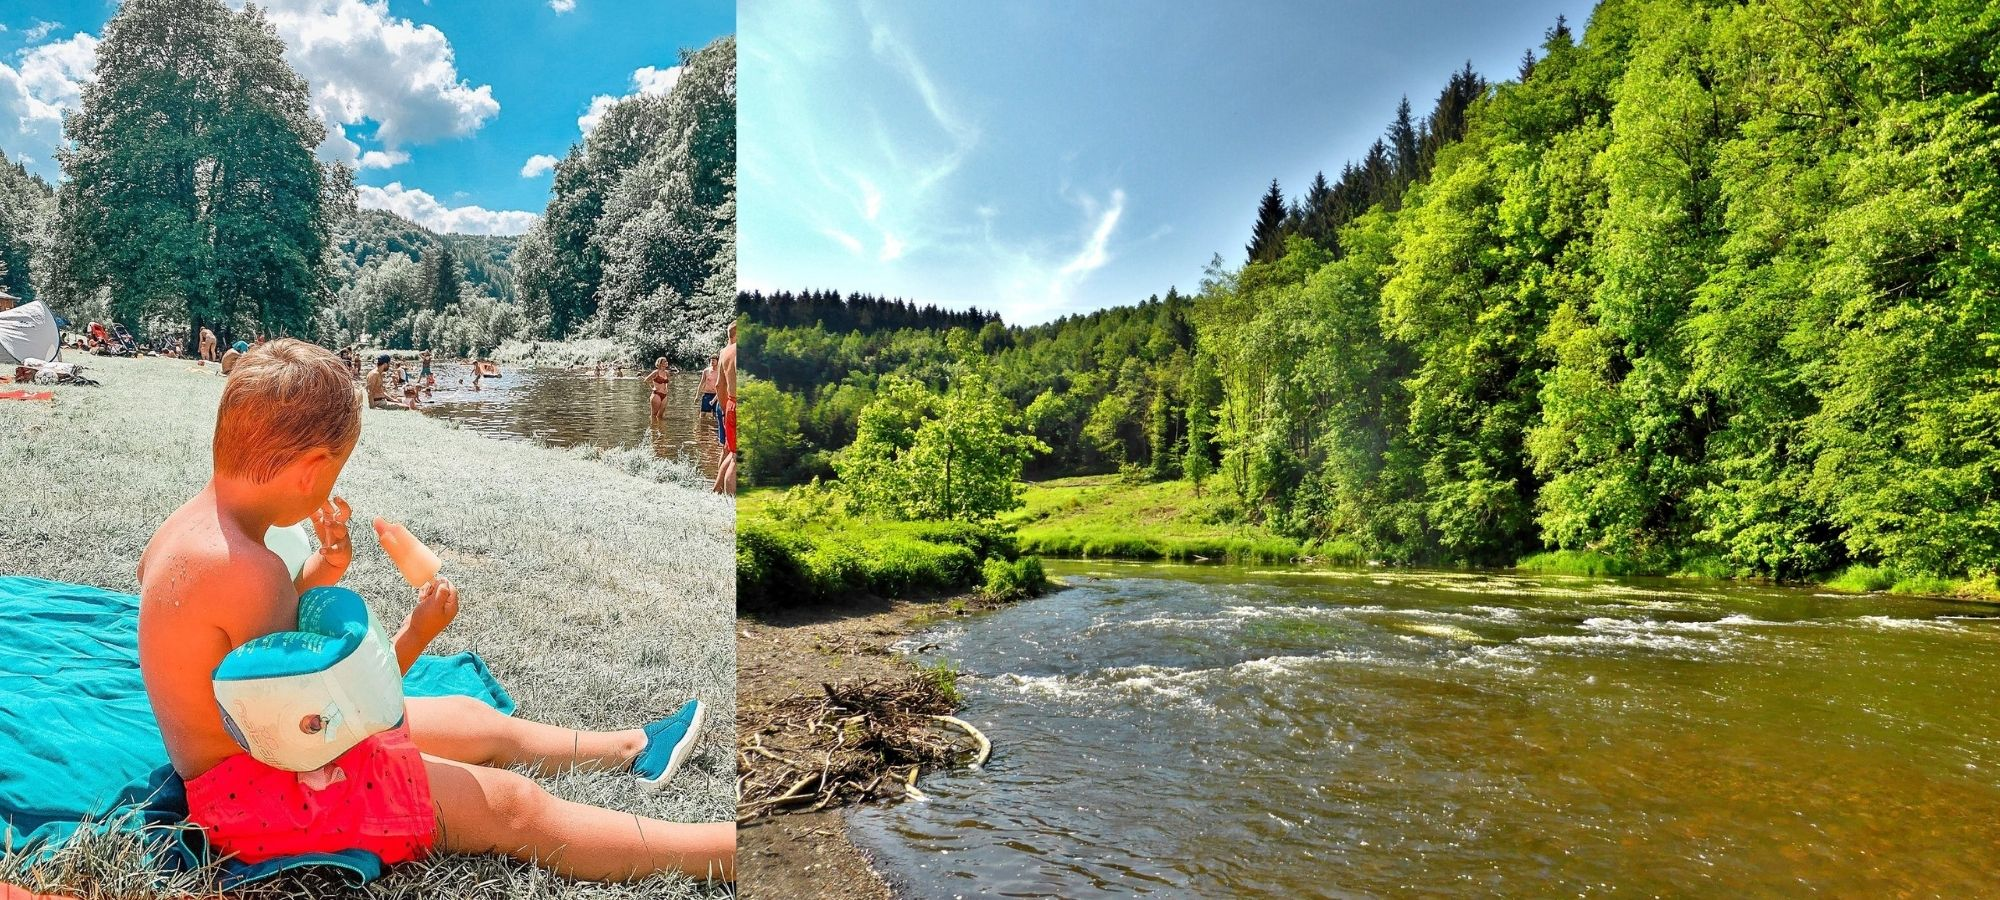 A young boy eating an ice lolly sitting on the banks of Maboge Beach in La Roche-en-Ardenne.